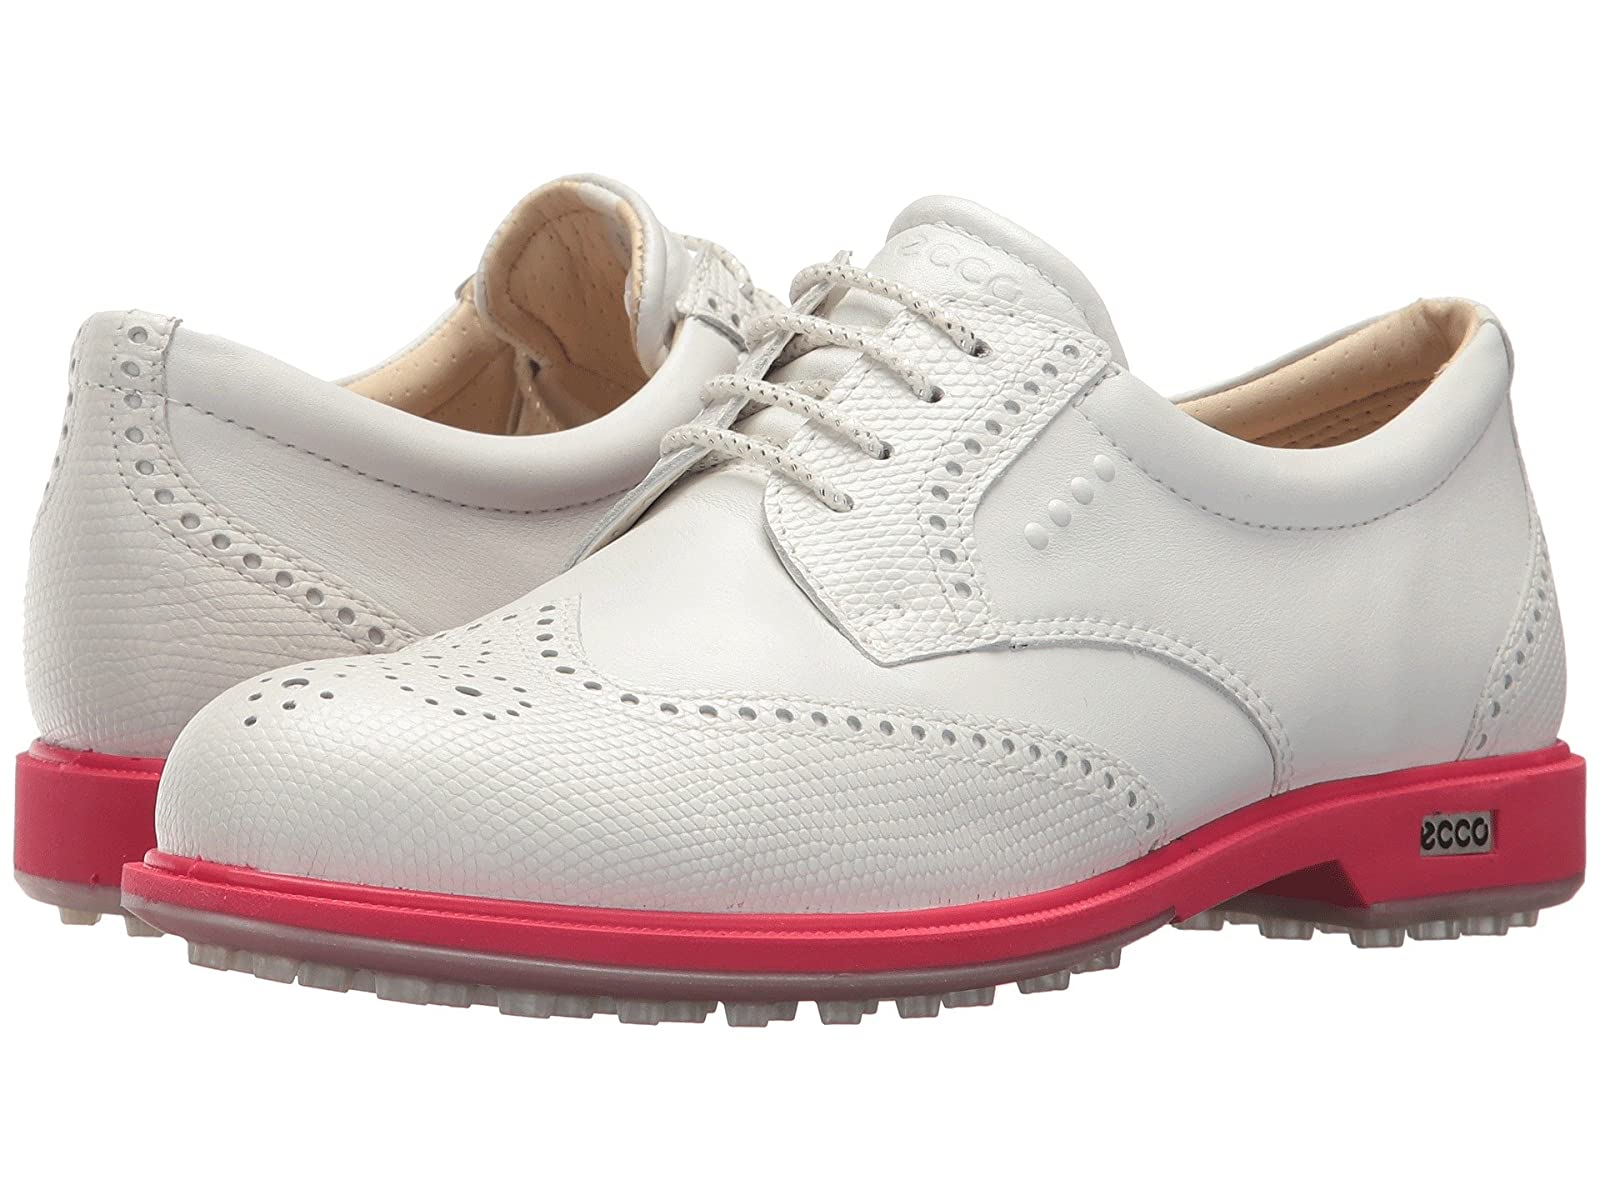 ECCO Golf Classic Golf HybridAtmospheric grades have affordable shoes